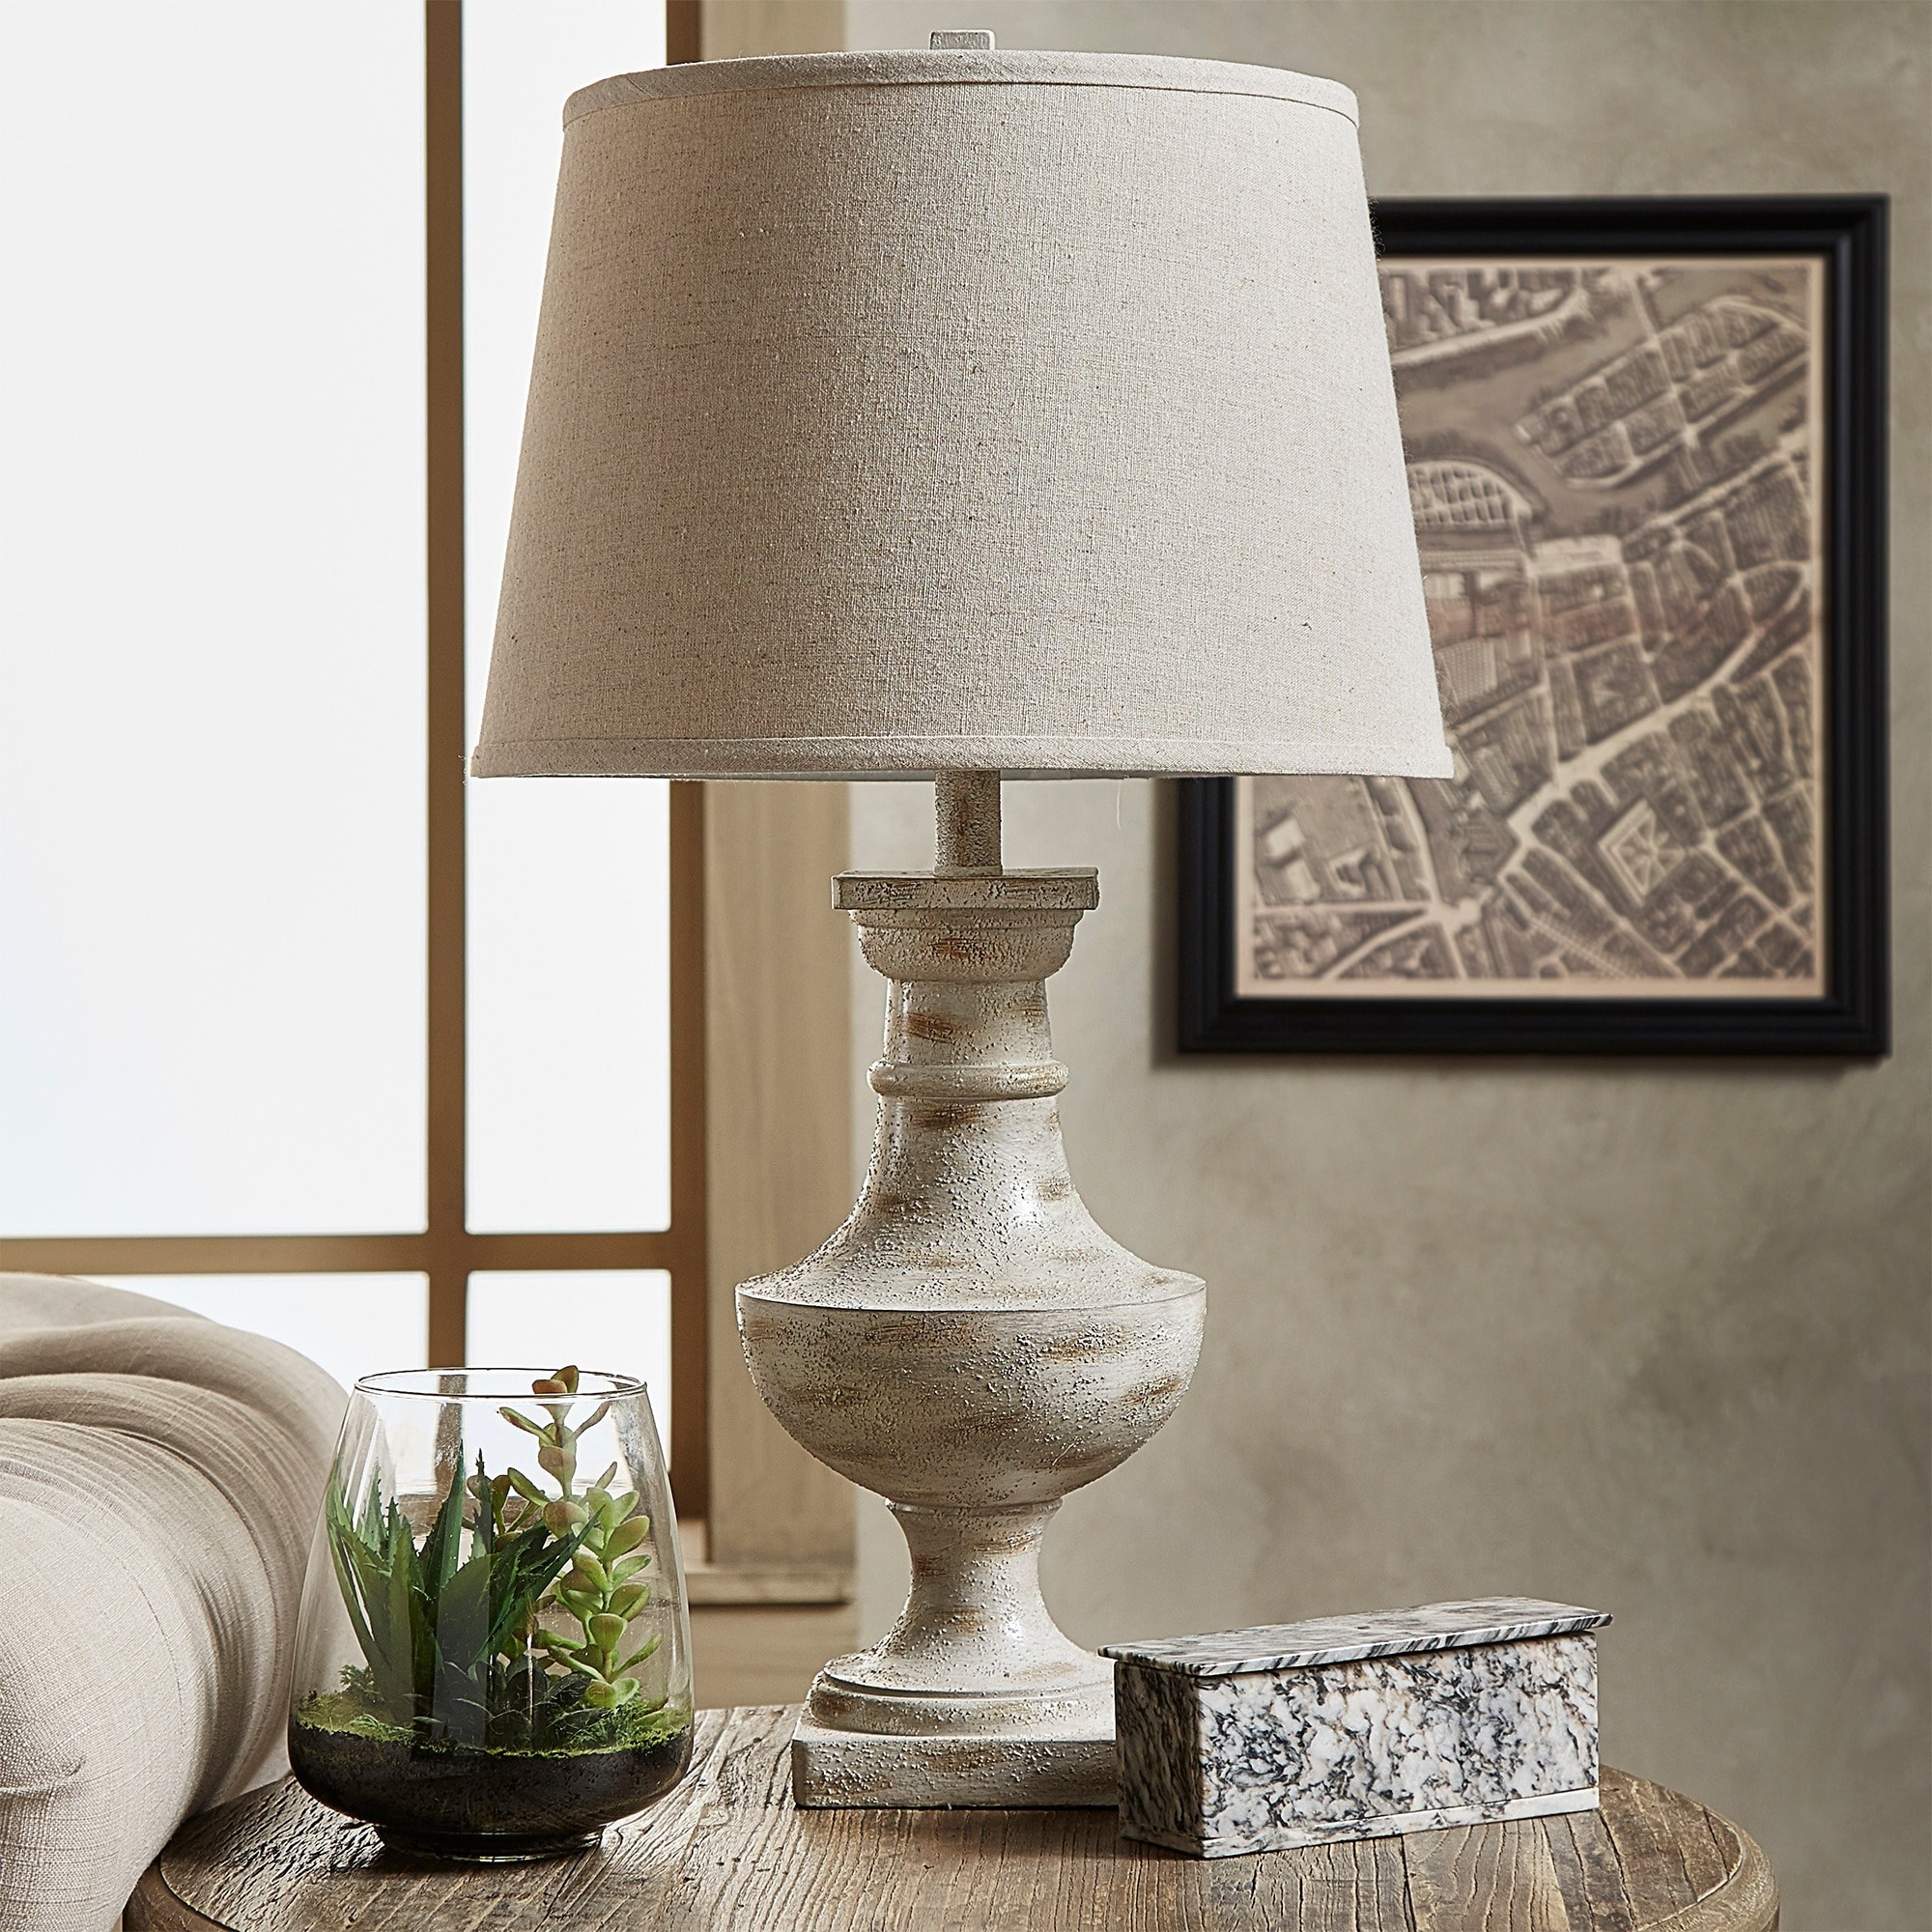 hyperion textured off white light accent table lampinspire regarding lamp heyburn brushed steel with usb port mid century outdoor furniture pier one imports lamps cupboard mirror